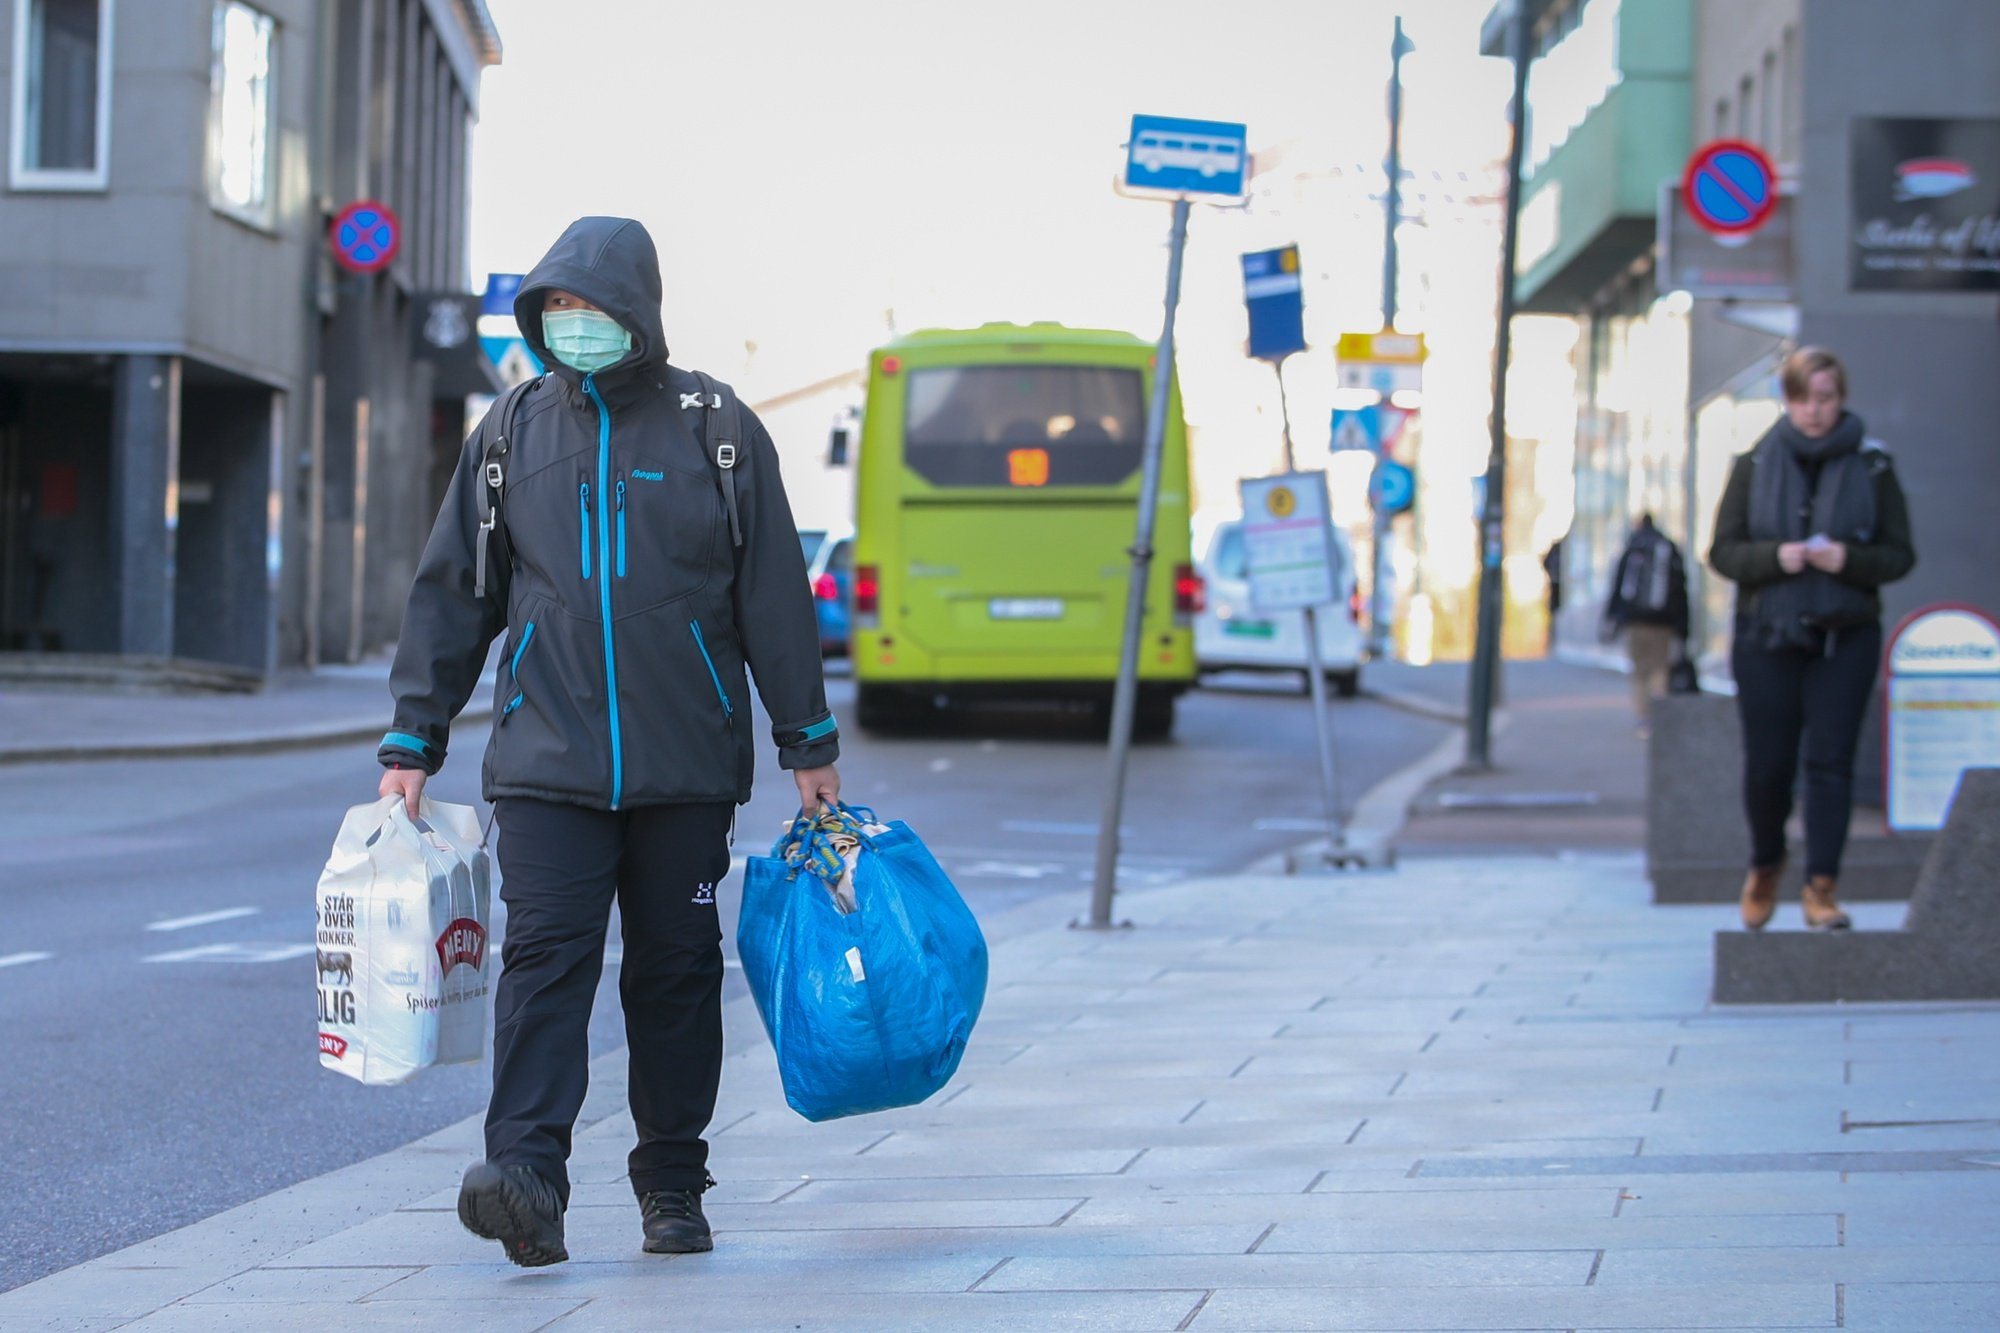 epa08291576 A man protecting himself with a mask carries shopping bags on a street of Oslo, Norway, 13 March 2020. Due to coronavirus COVID-19 outbreak it is relatively quiet in the streets of Norway's capital.  EPA/HAKON MOSVOLD LARSEN  NORWAY OUT